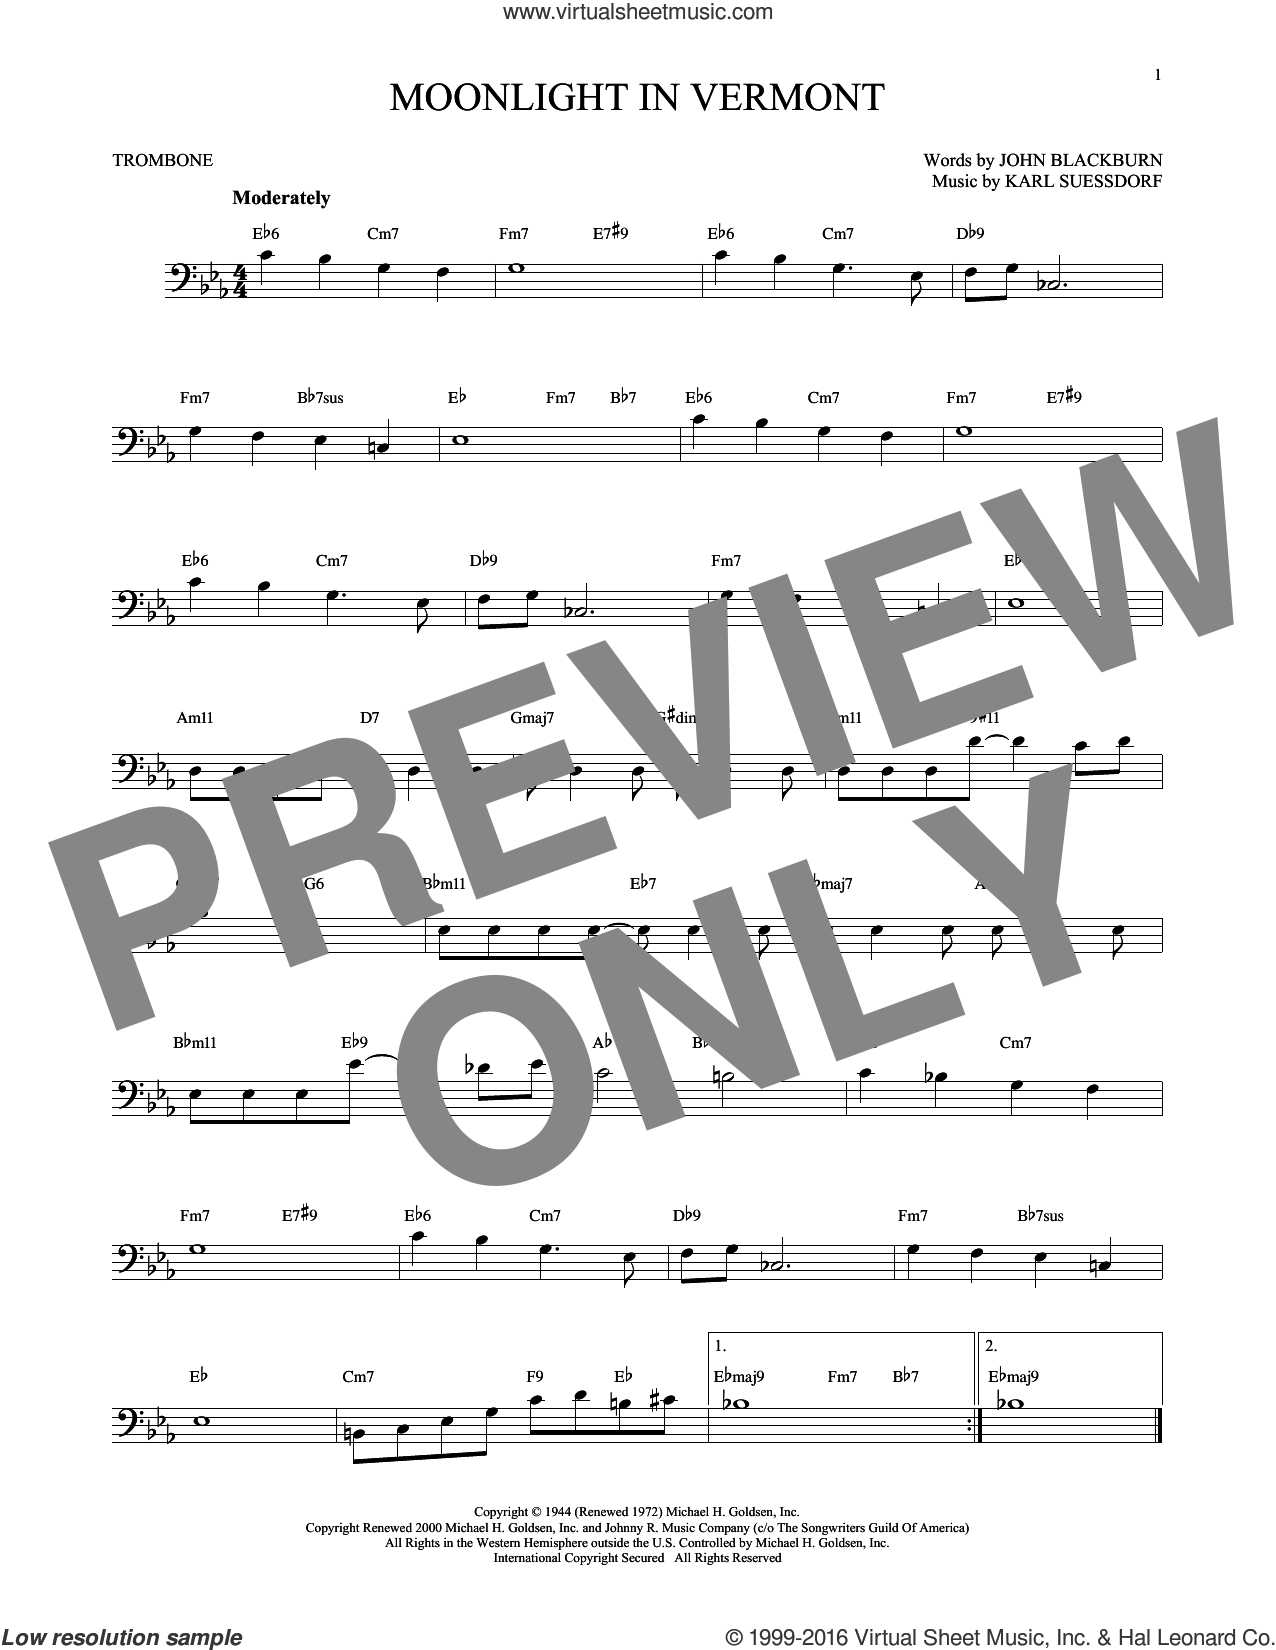 Moonlight In Vermont sheet music for trombone solo by Karl Suessdorf and John Blackburn, intermediate skill level